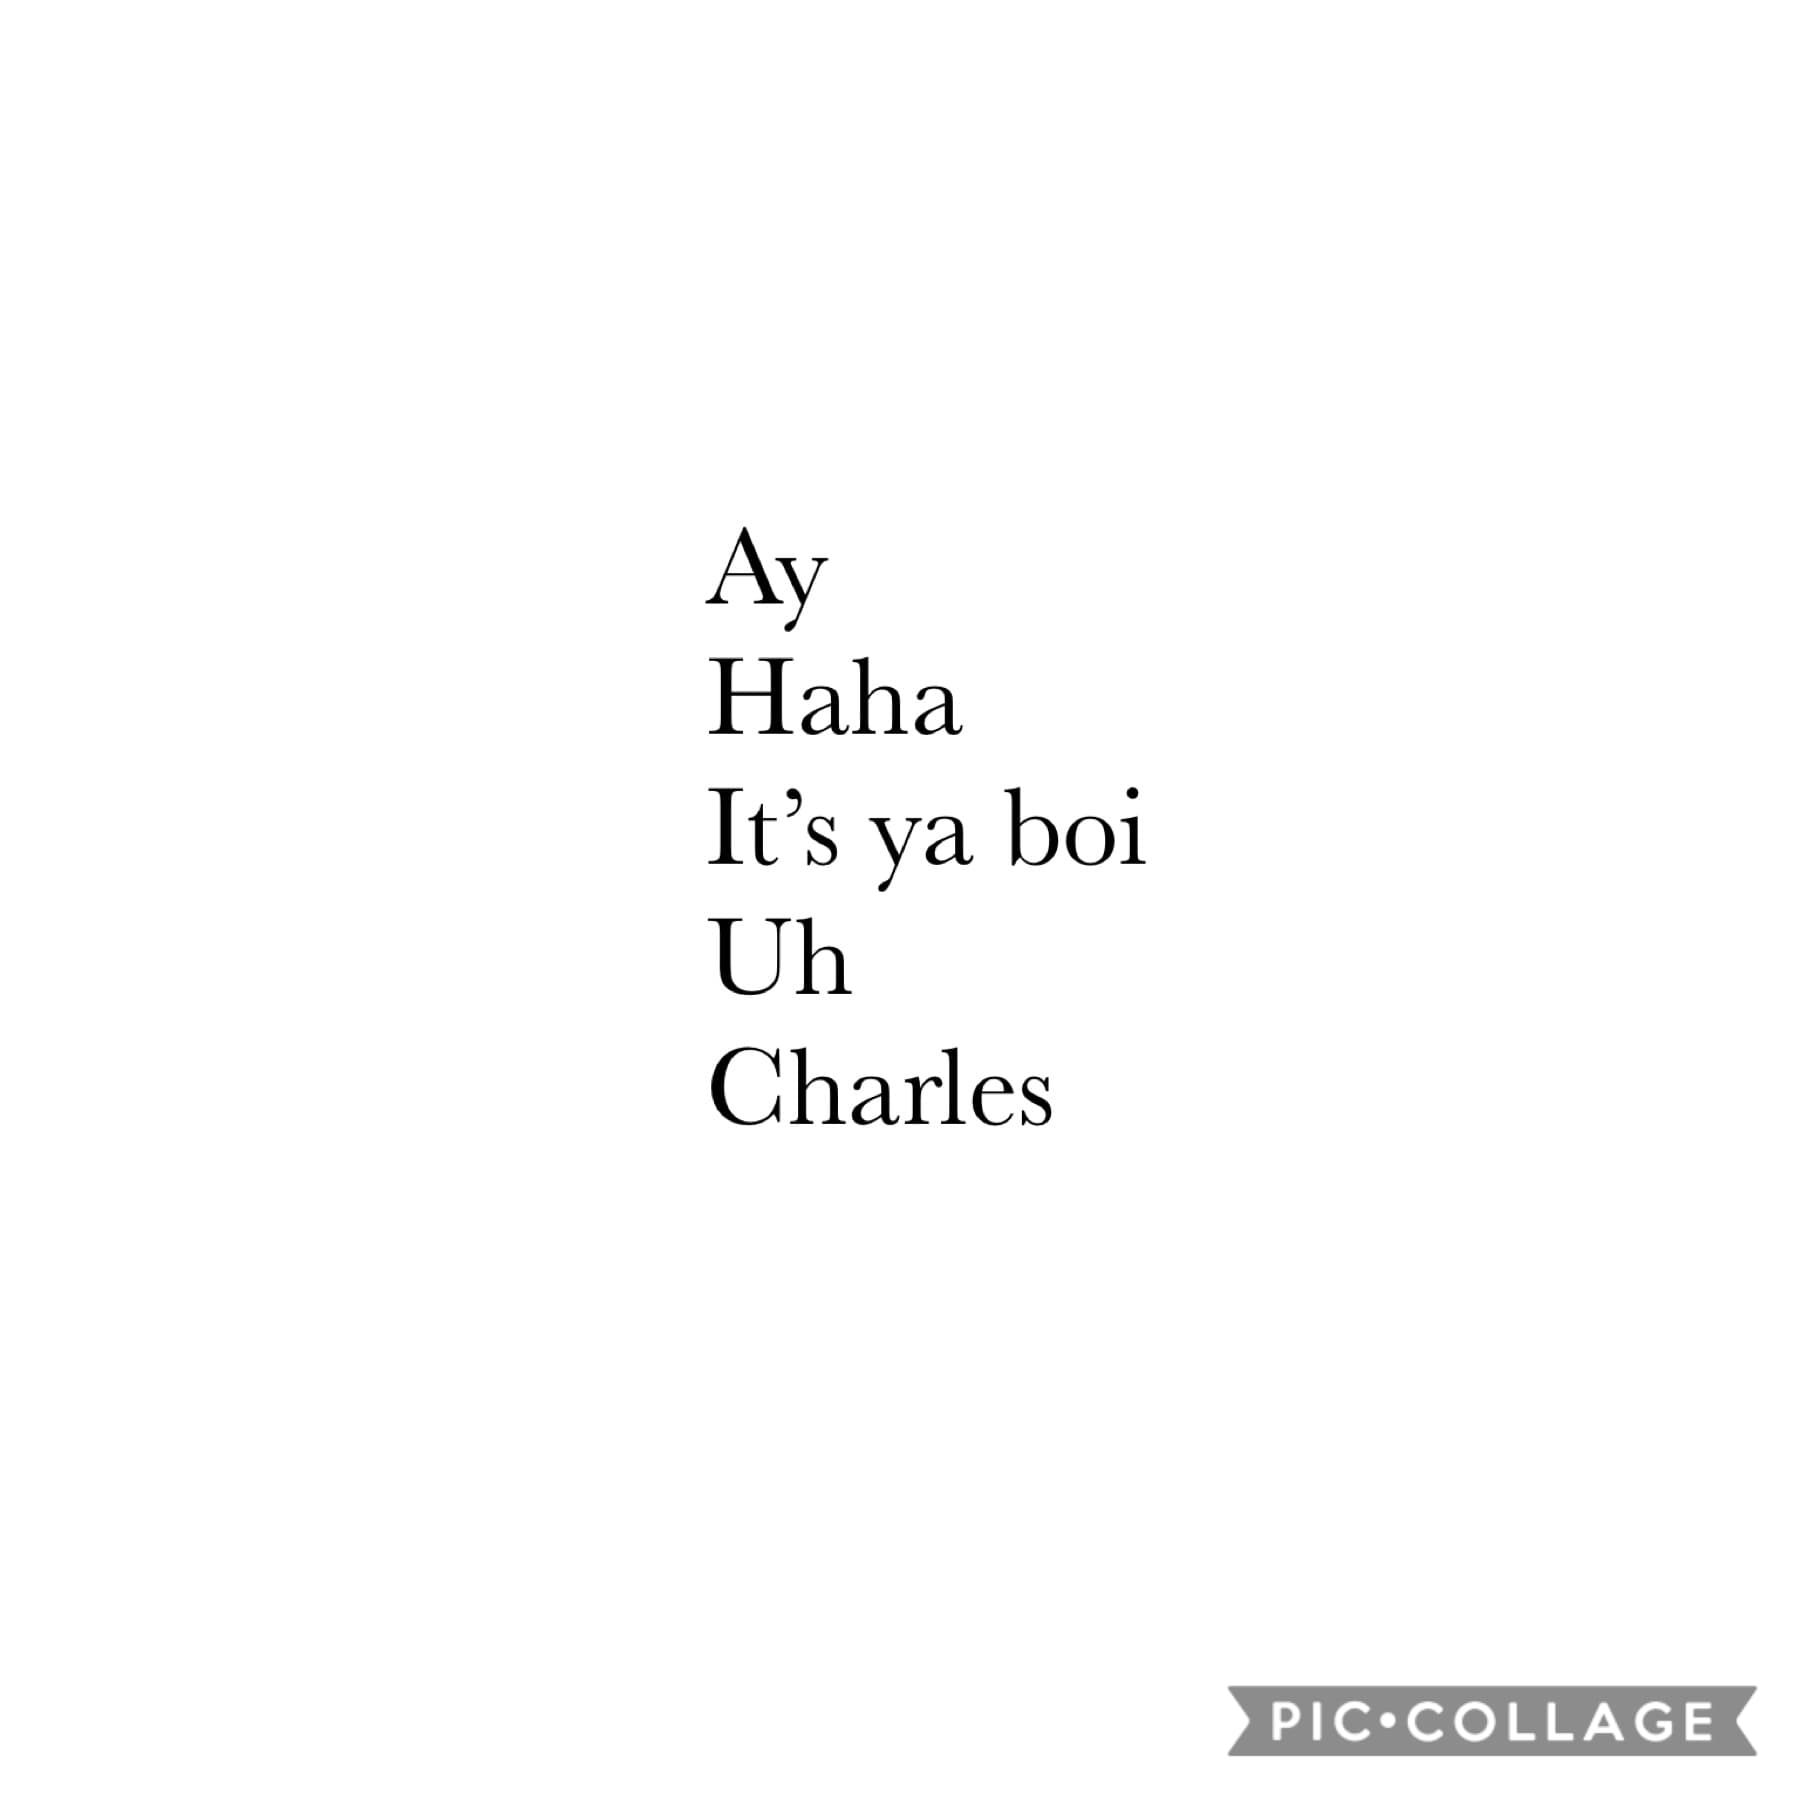 So I guess Charles is my new nickname (but y'all can keep calling me Zoey if ya want)